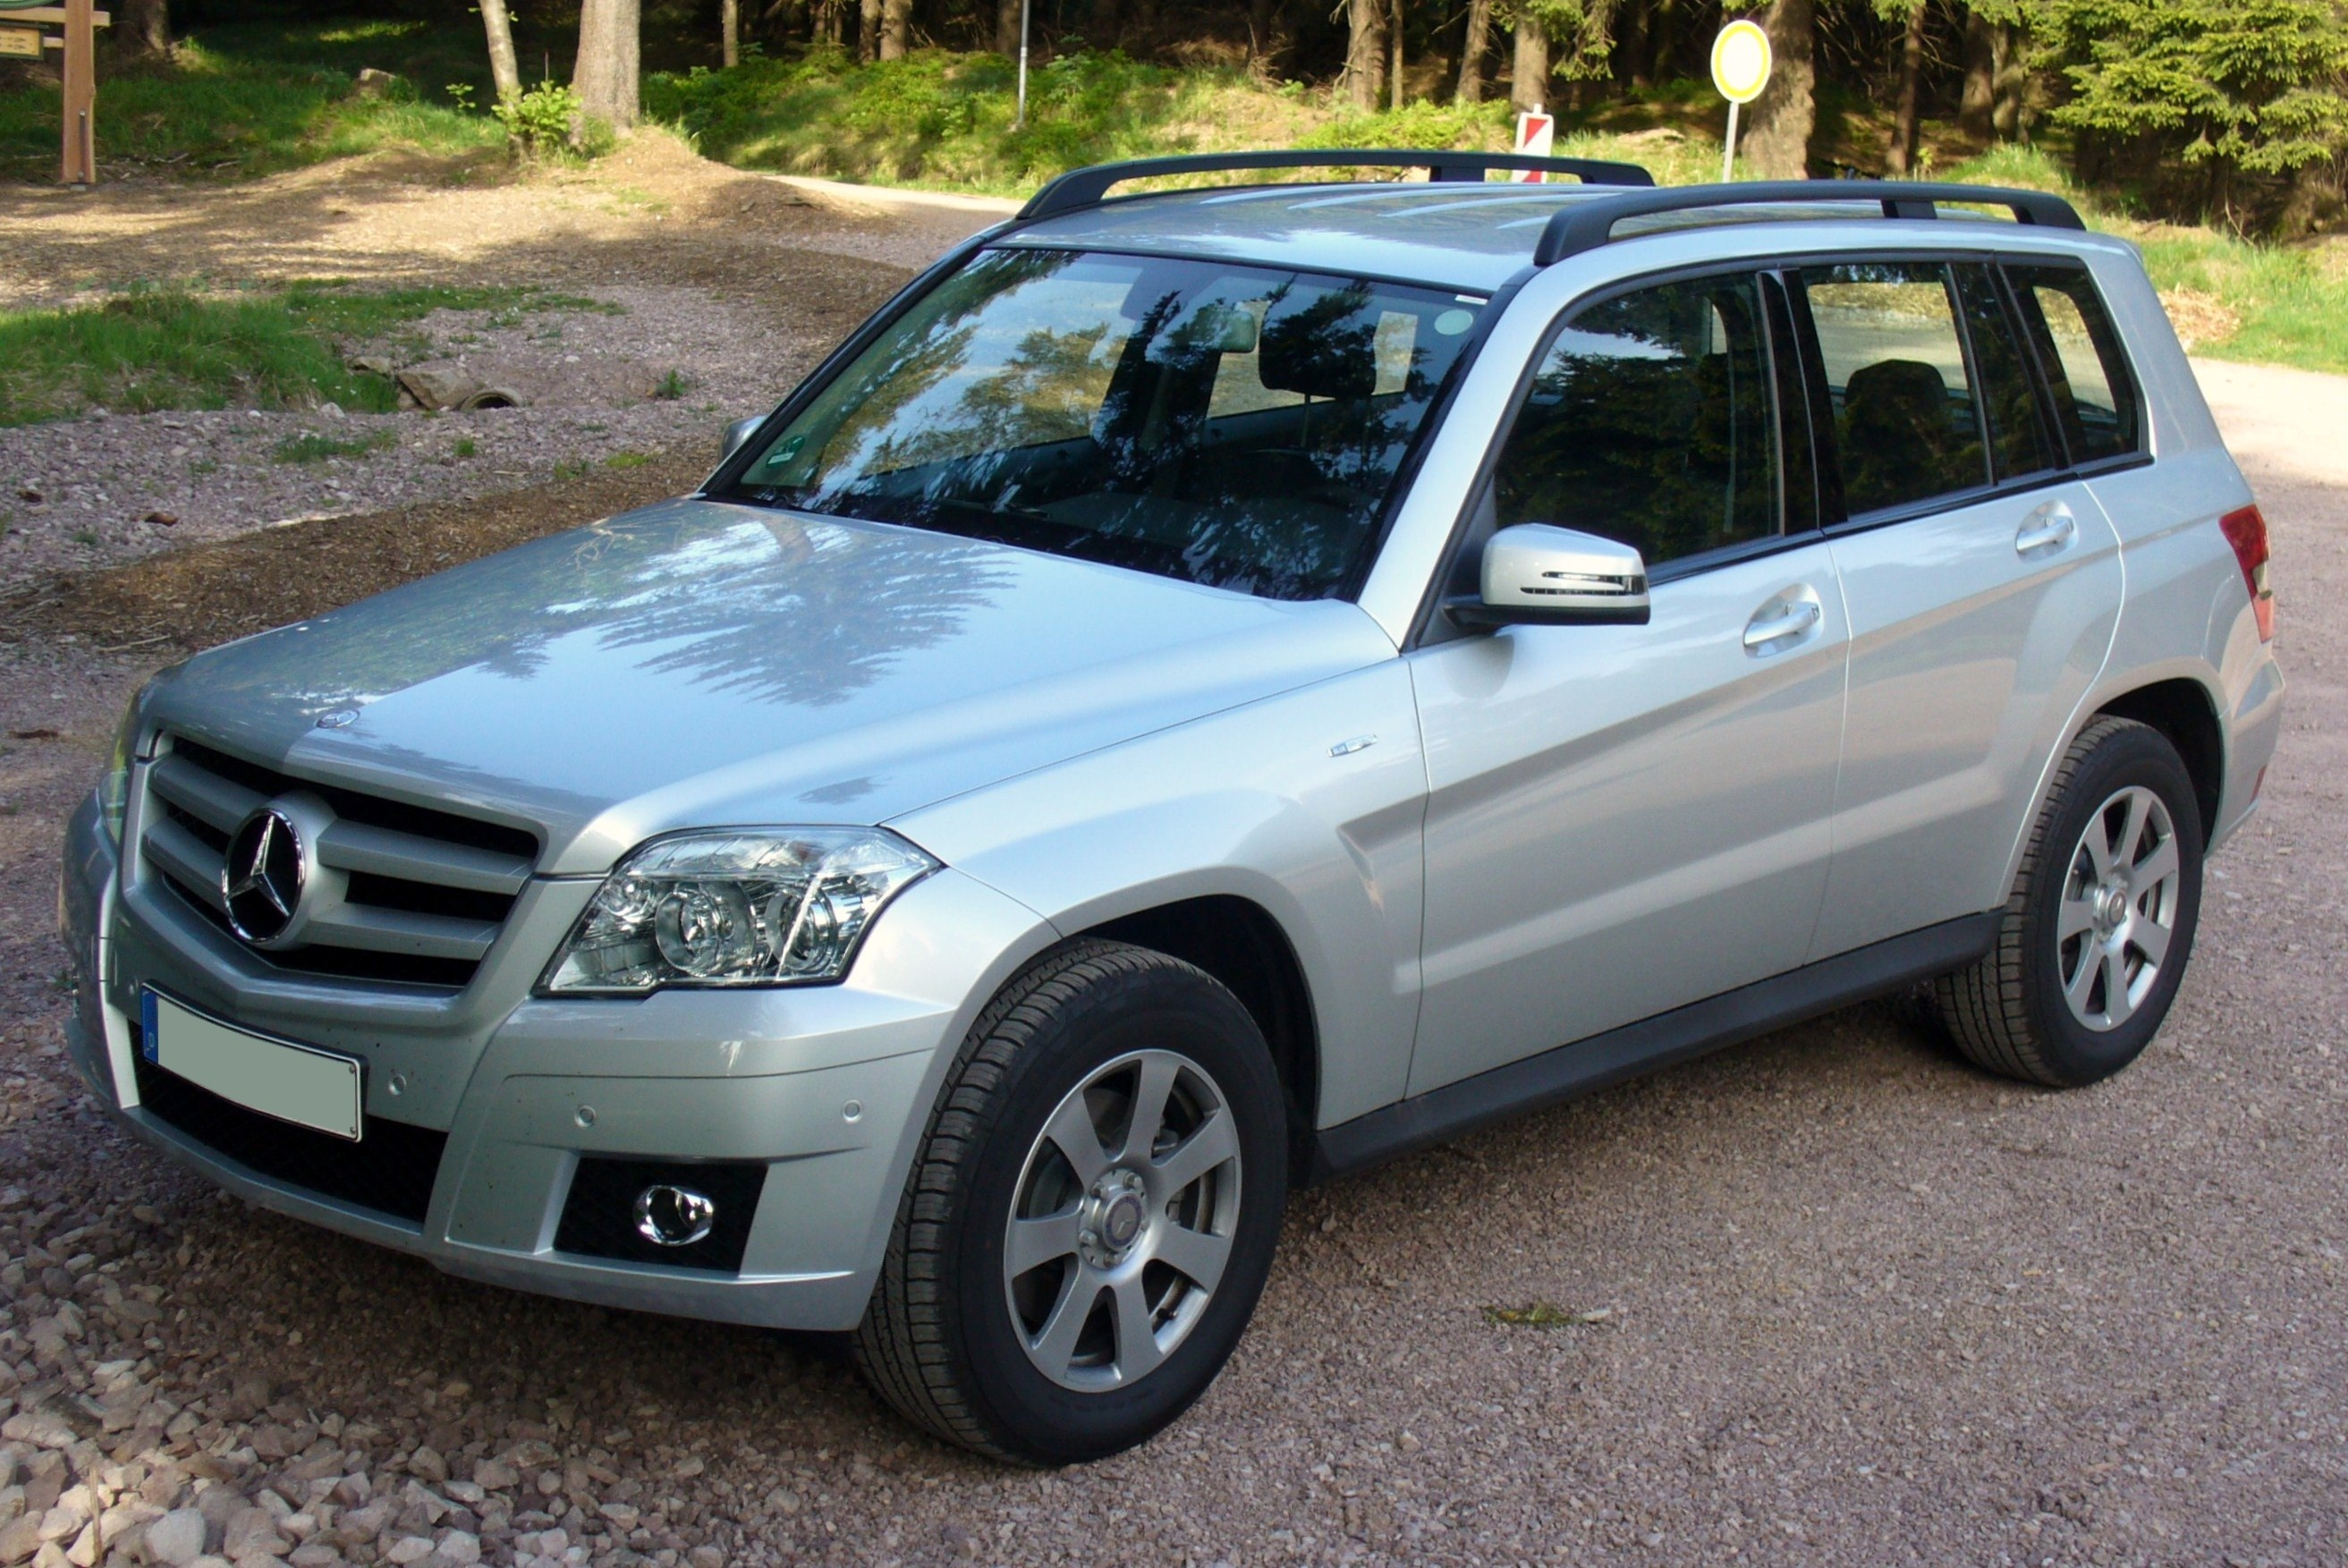 Mercedes Glk 200 Benziner Gebraucht : file mercedes benz glk 200 cdi blueefficiency jpg wikimedia commons ~ Aude.kayakingforconservation.com Haus und Dekorationen